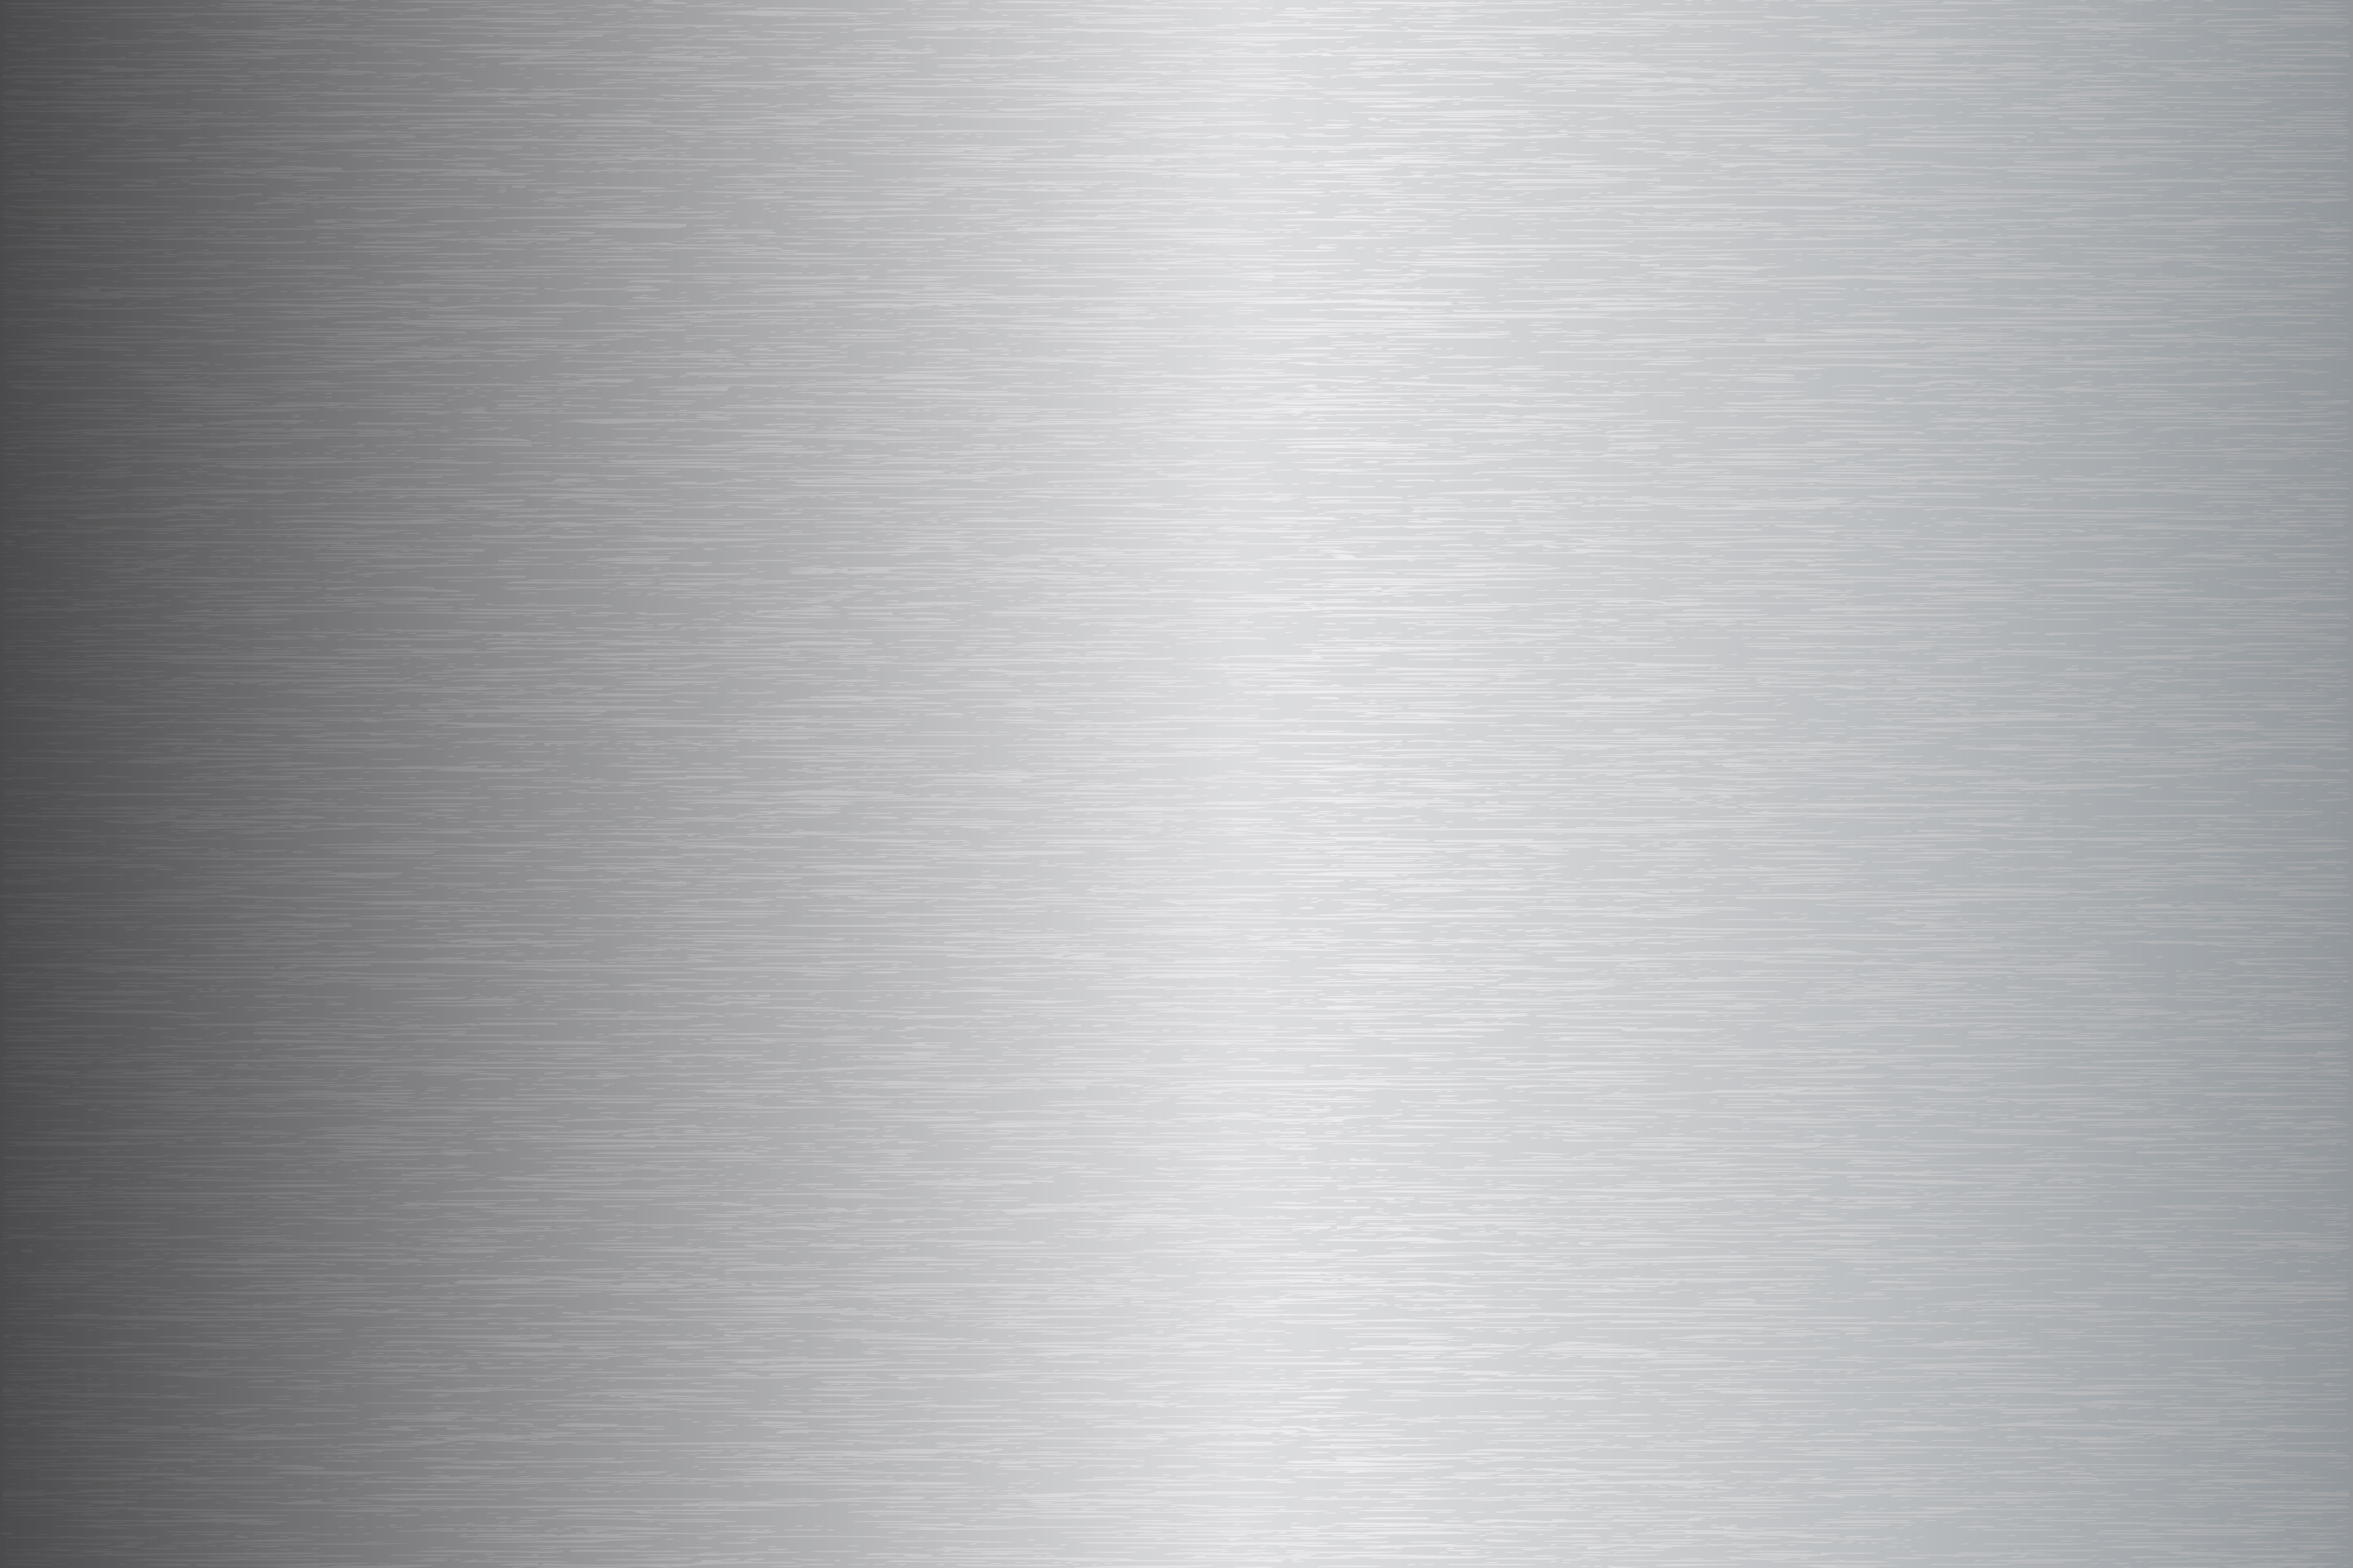 Brushed-Metal-Background